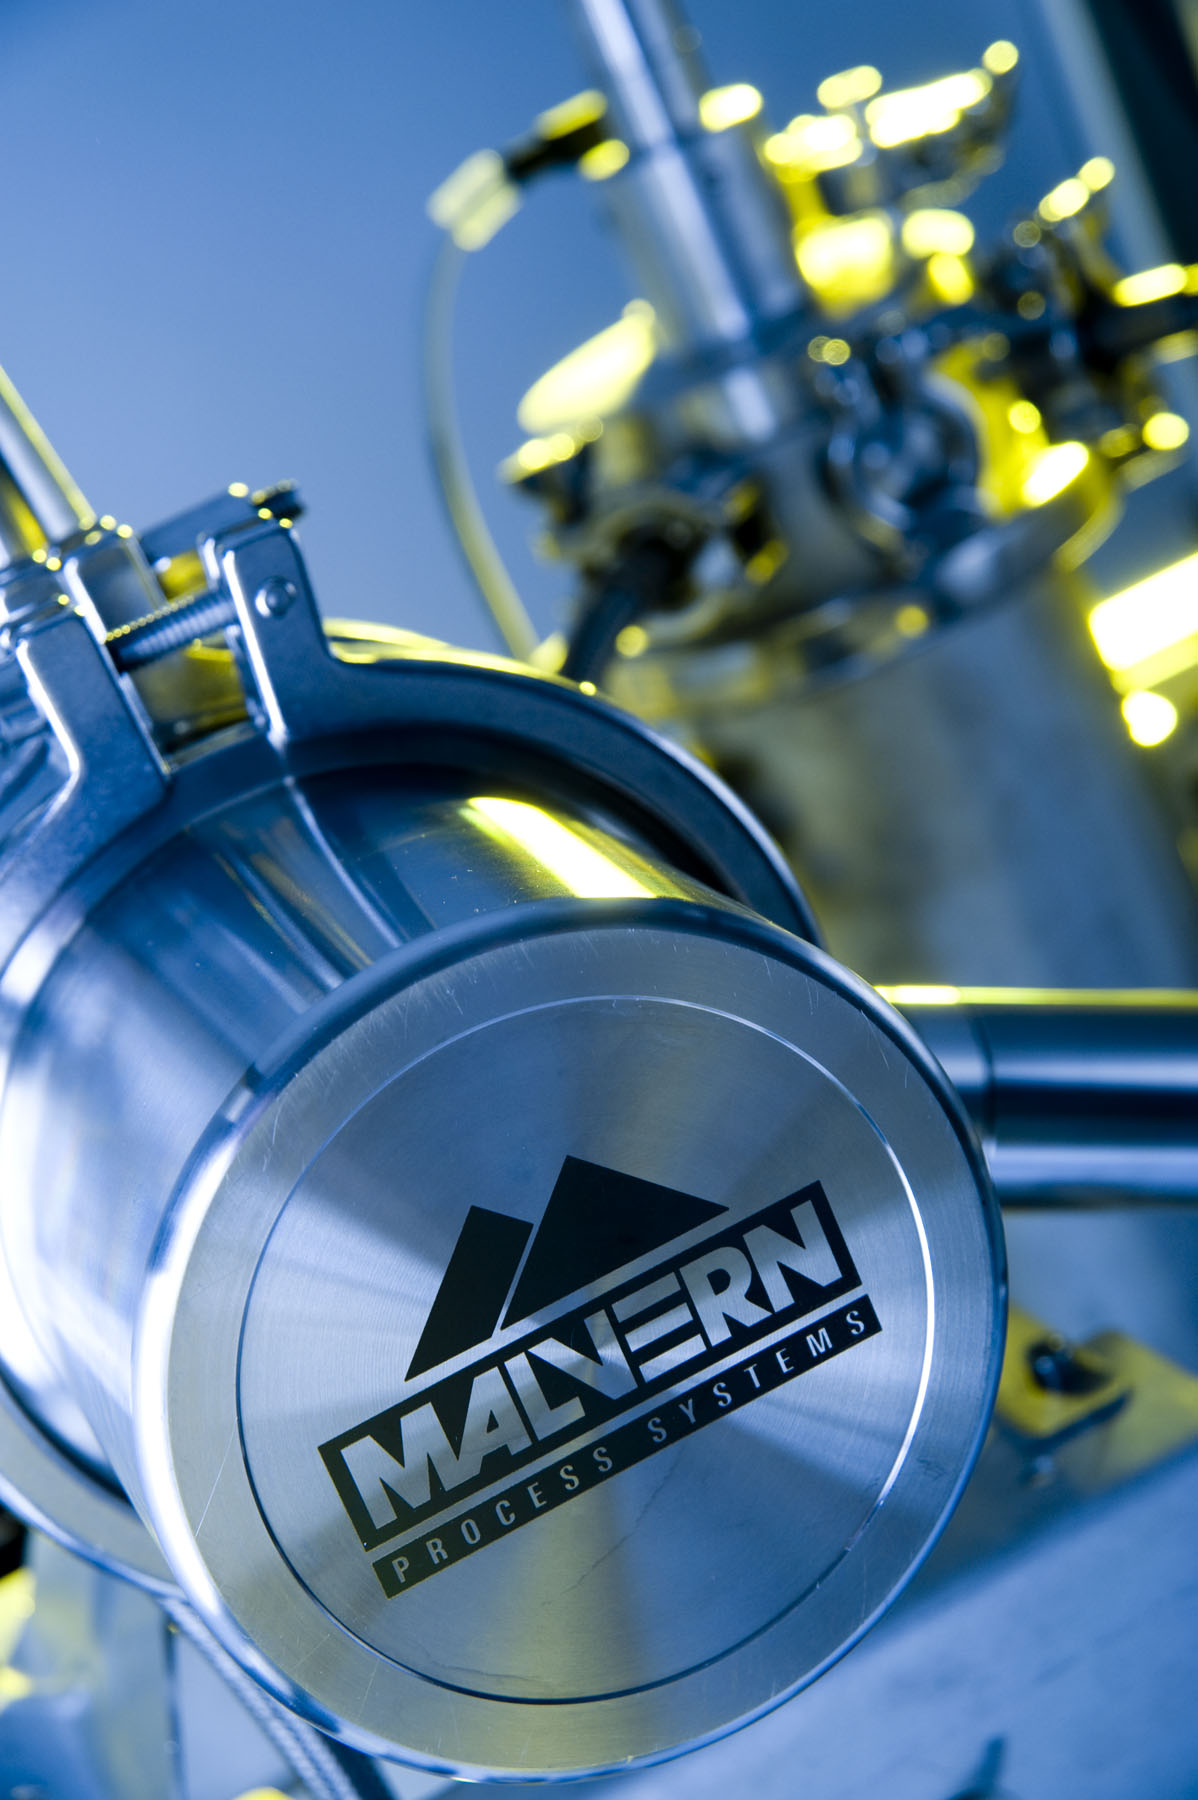 Close up of the Malvern LPS online particle size analyzer